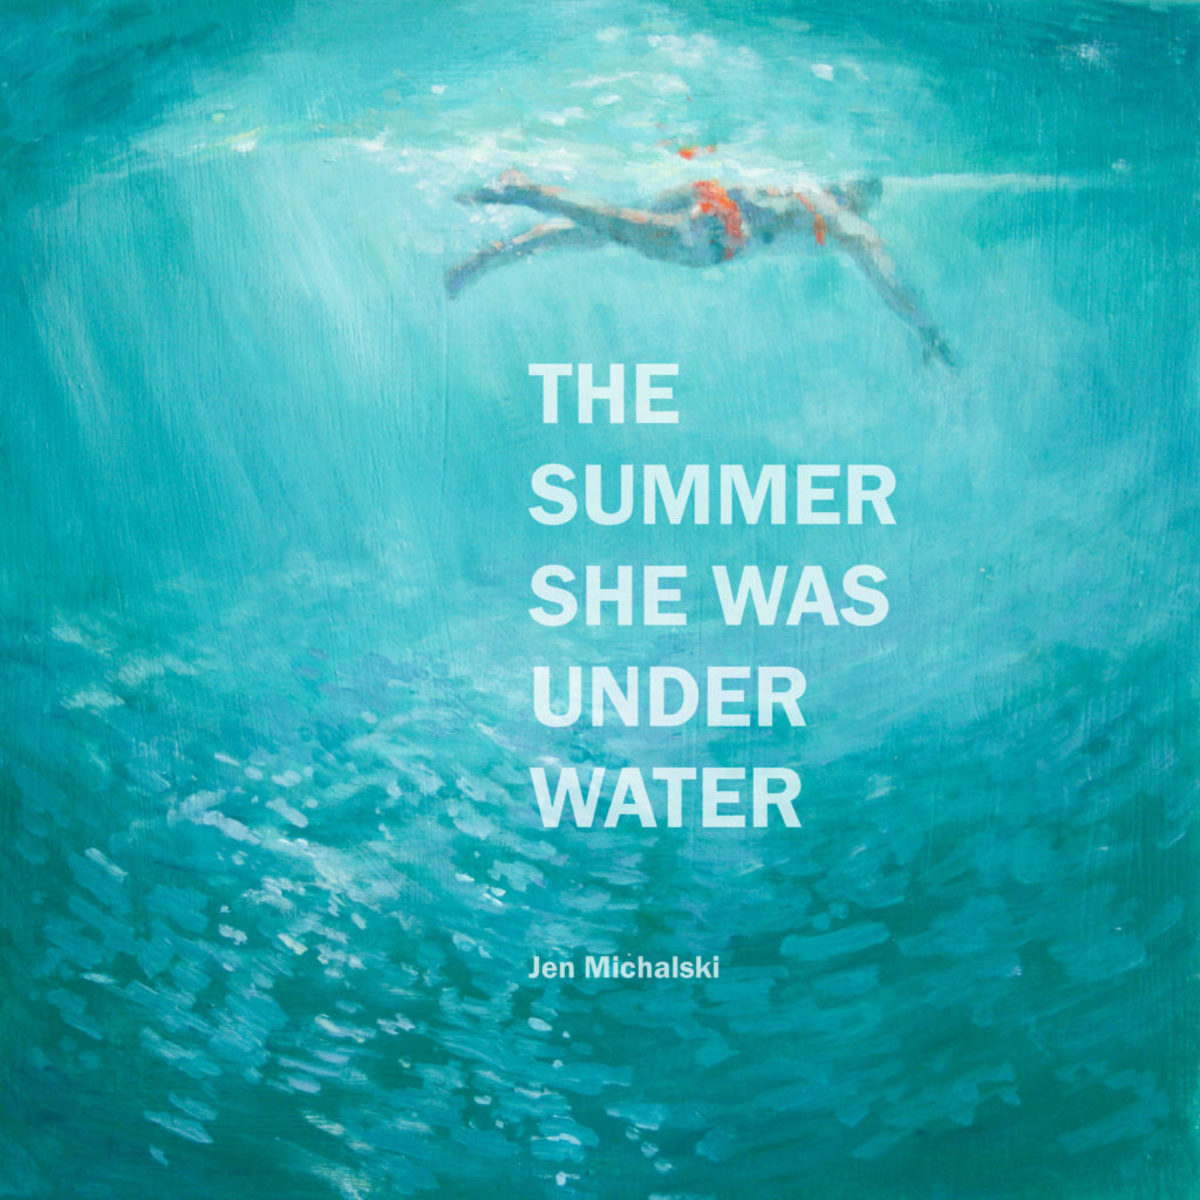 The-Summer-She-Was-Under-Water-book-cover